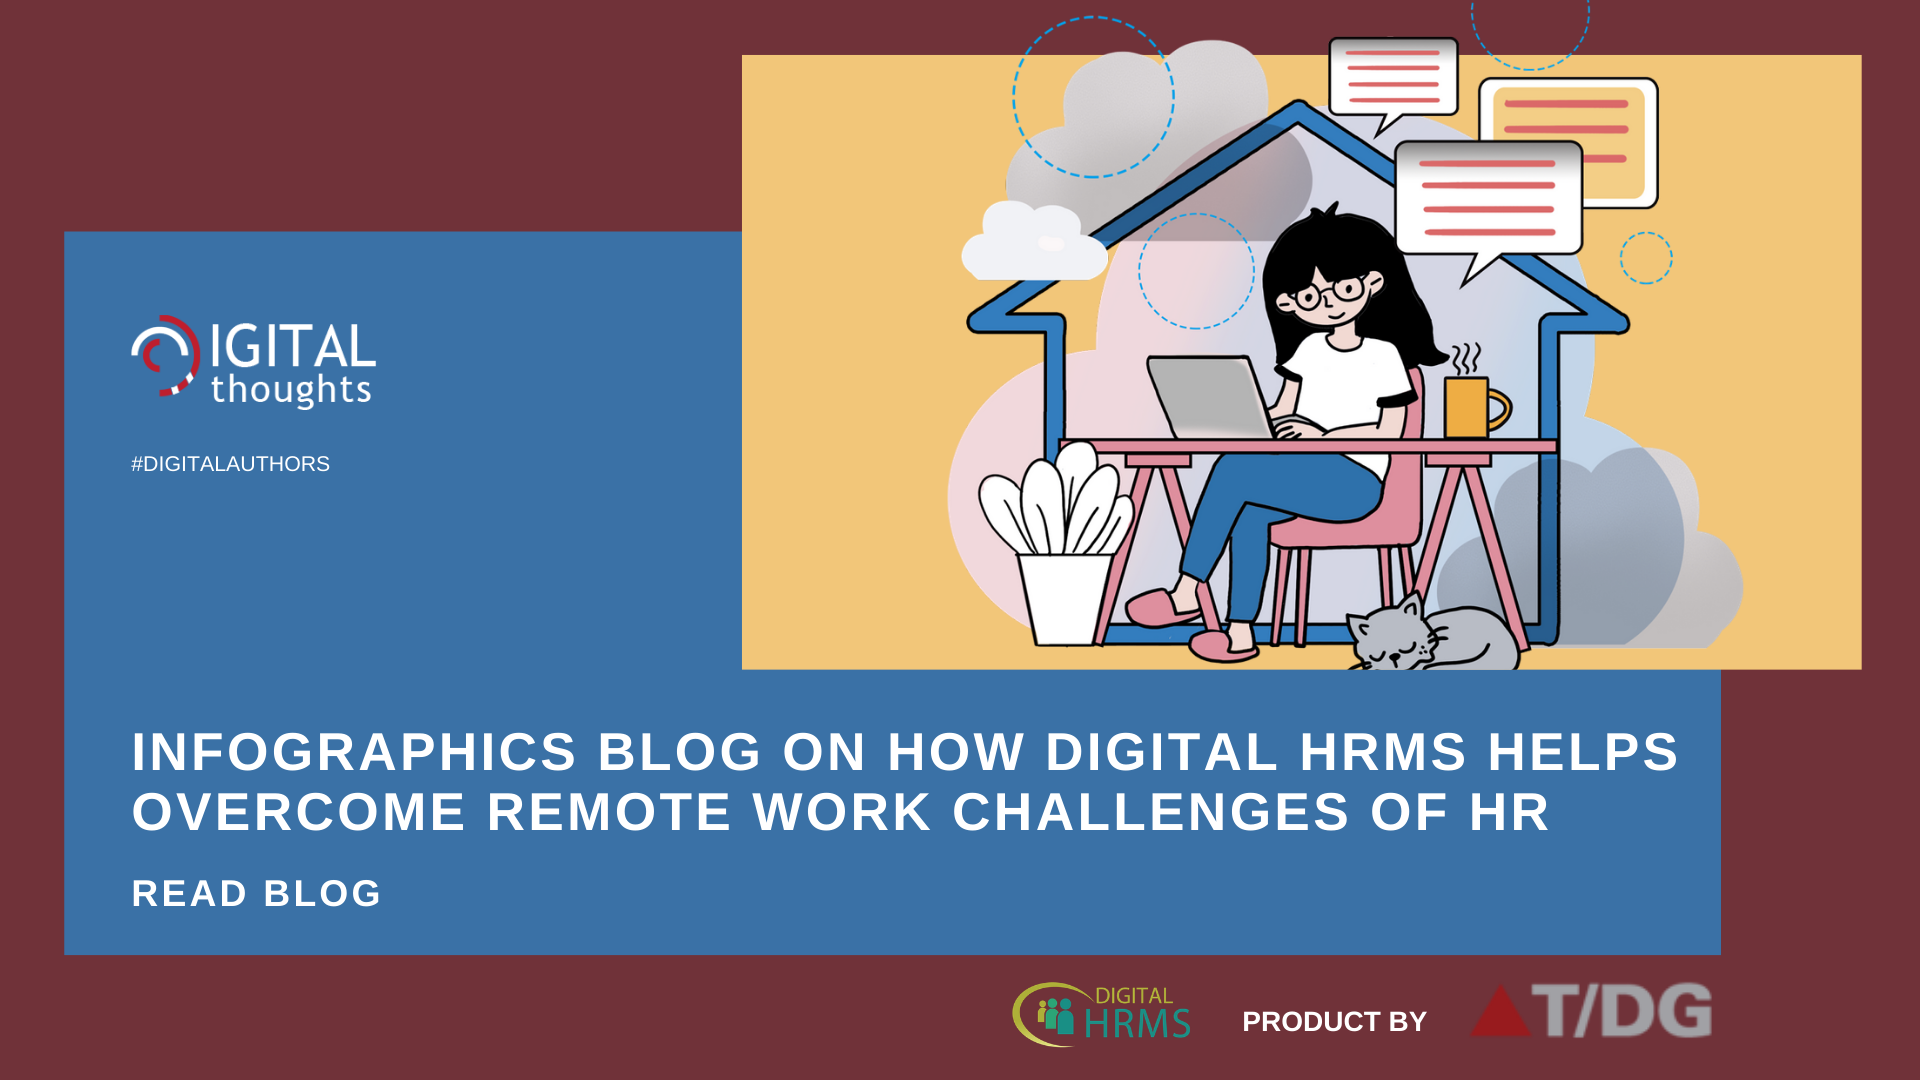 Infographics Blog on How Digital HRMS Helps Overcome 5 Remote Work HR Challenges